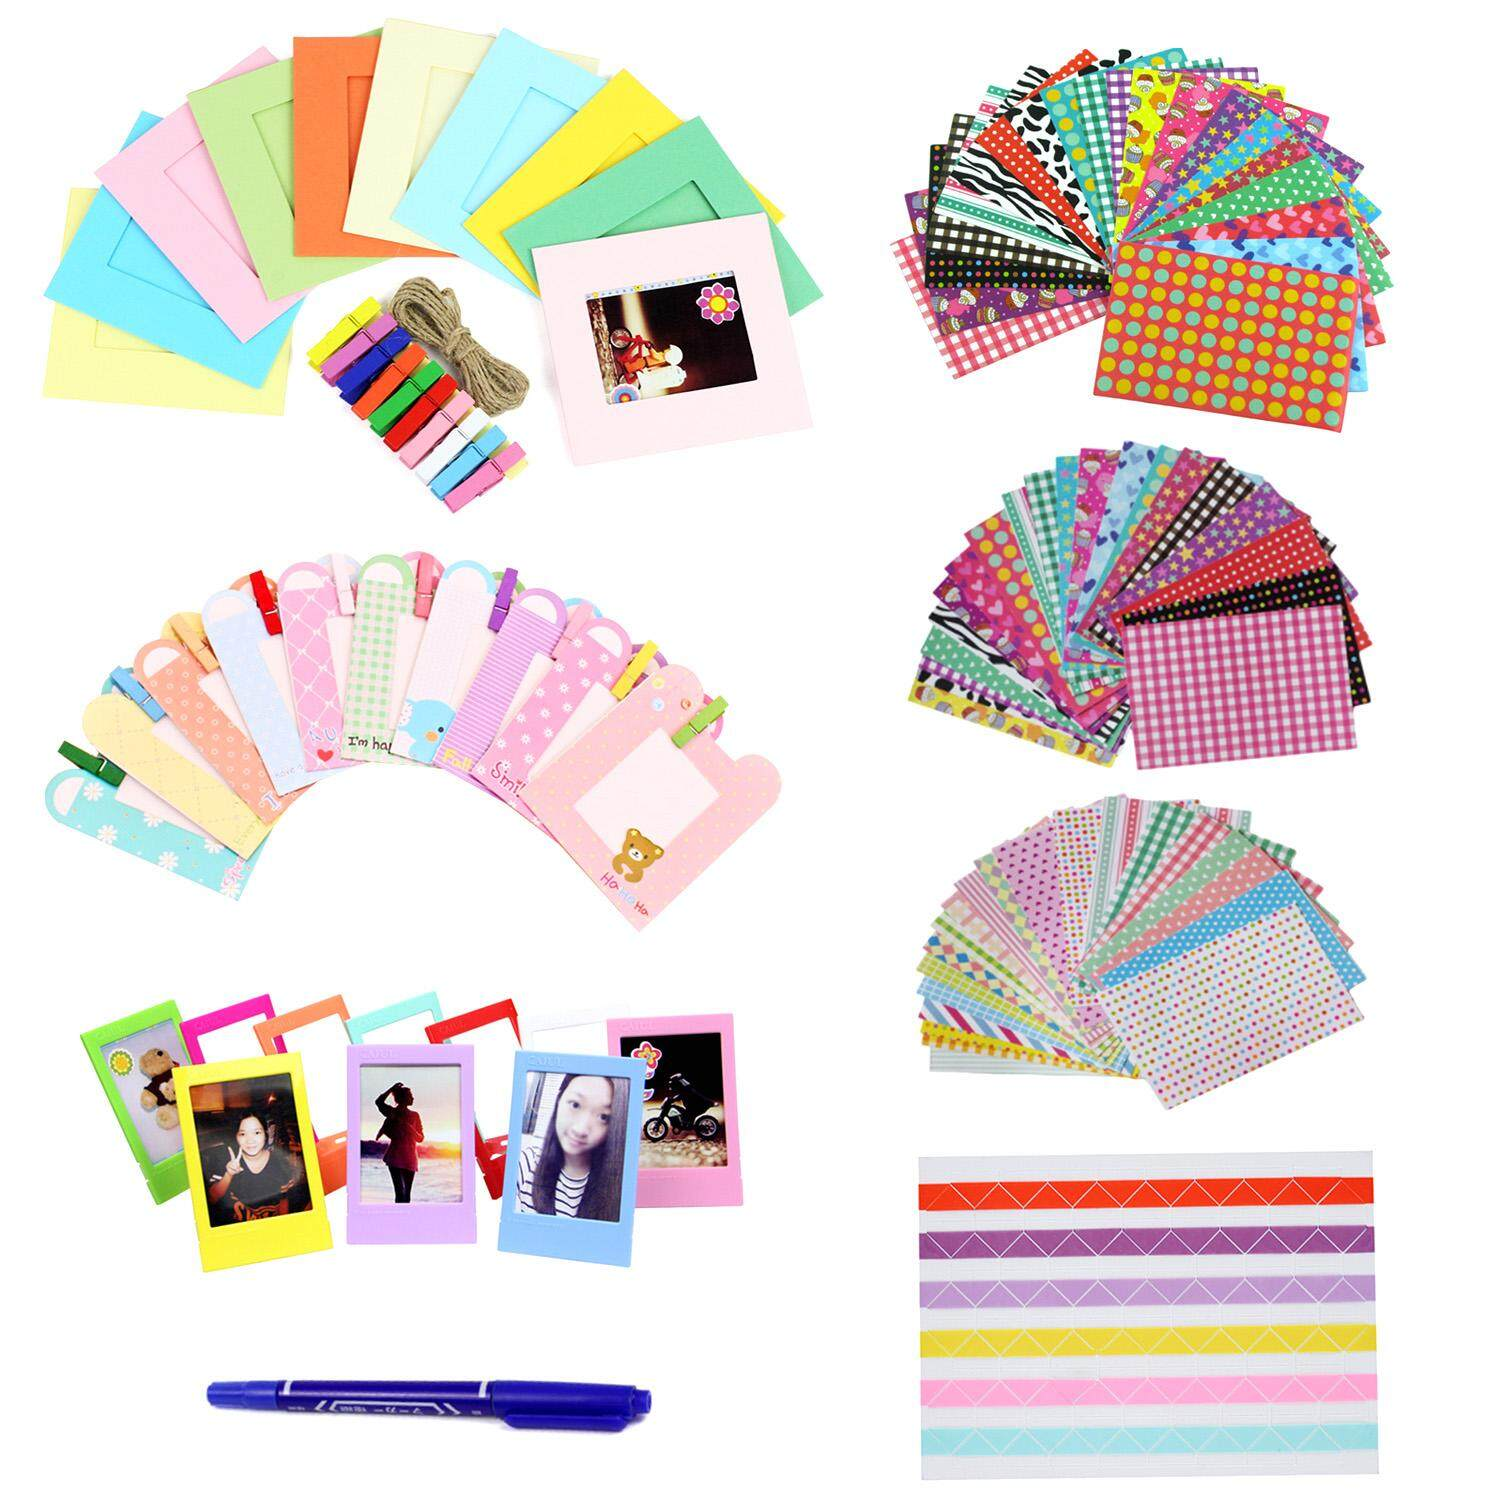 110pcs Diy Photo Pictures Frame Set Compatible With Fujifilm Instax Mini 8 7 S 9 25 50 70 90 Instant Camera Film By Stoneky.